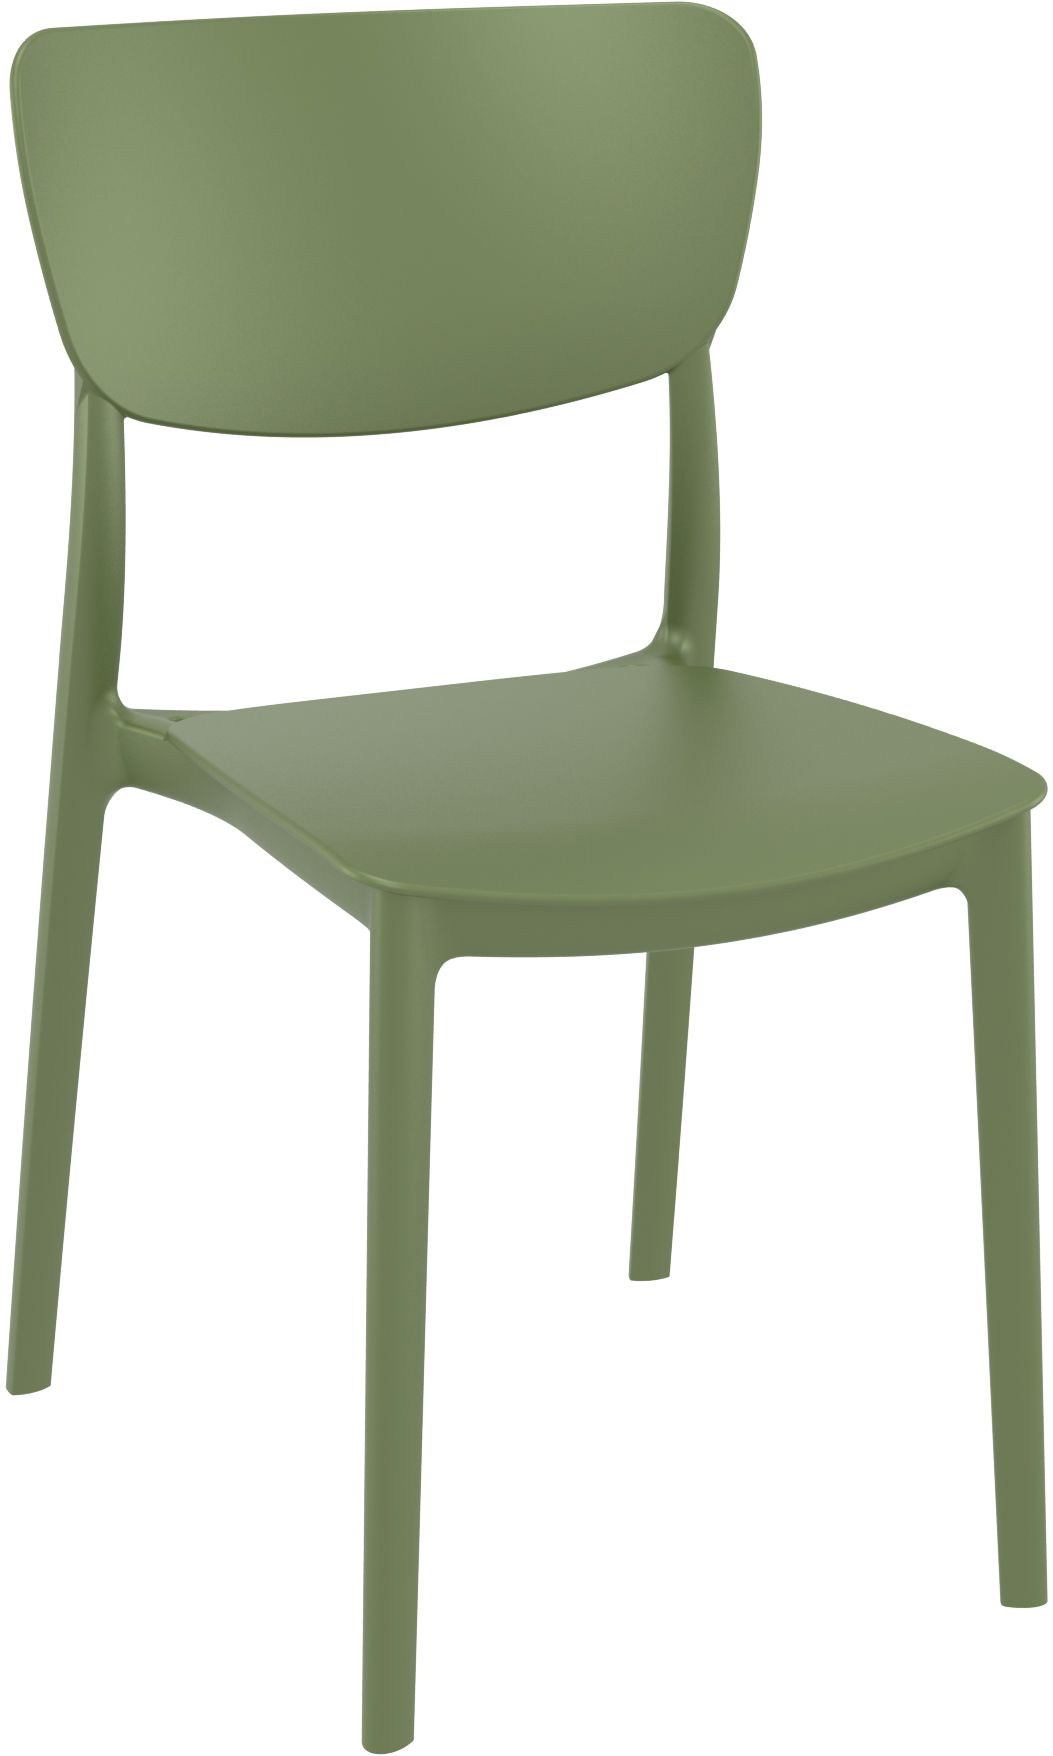 Monna Chair - Olive Green